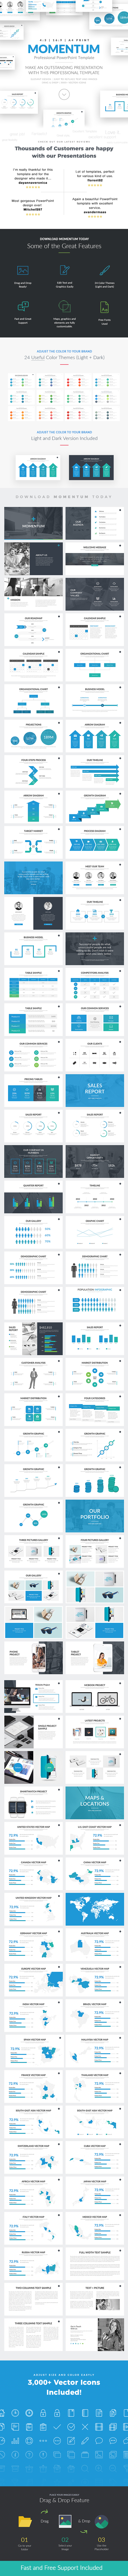 Momentum Professional Business PowerPoint Template by LouisTwelve-Design